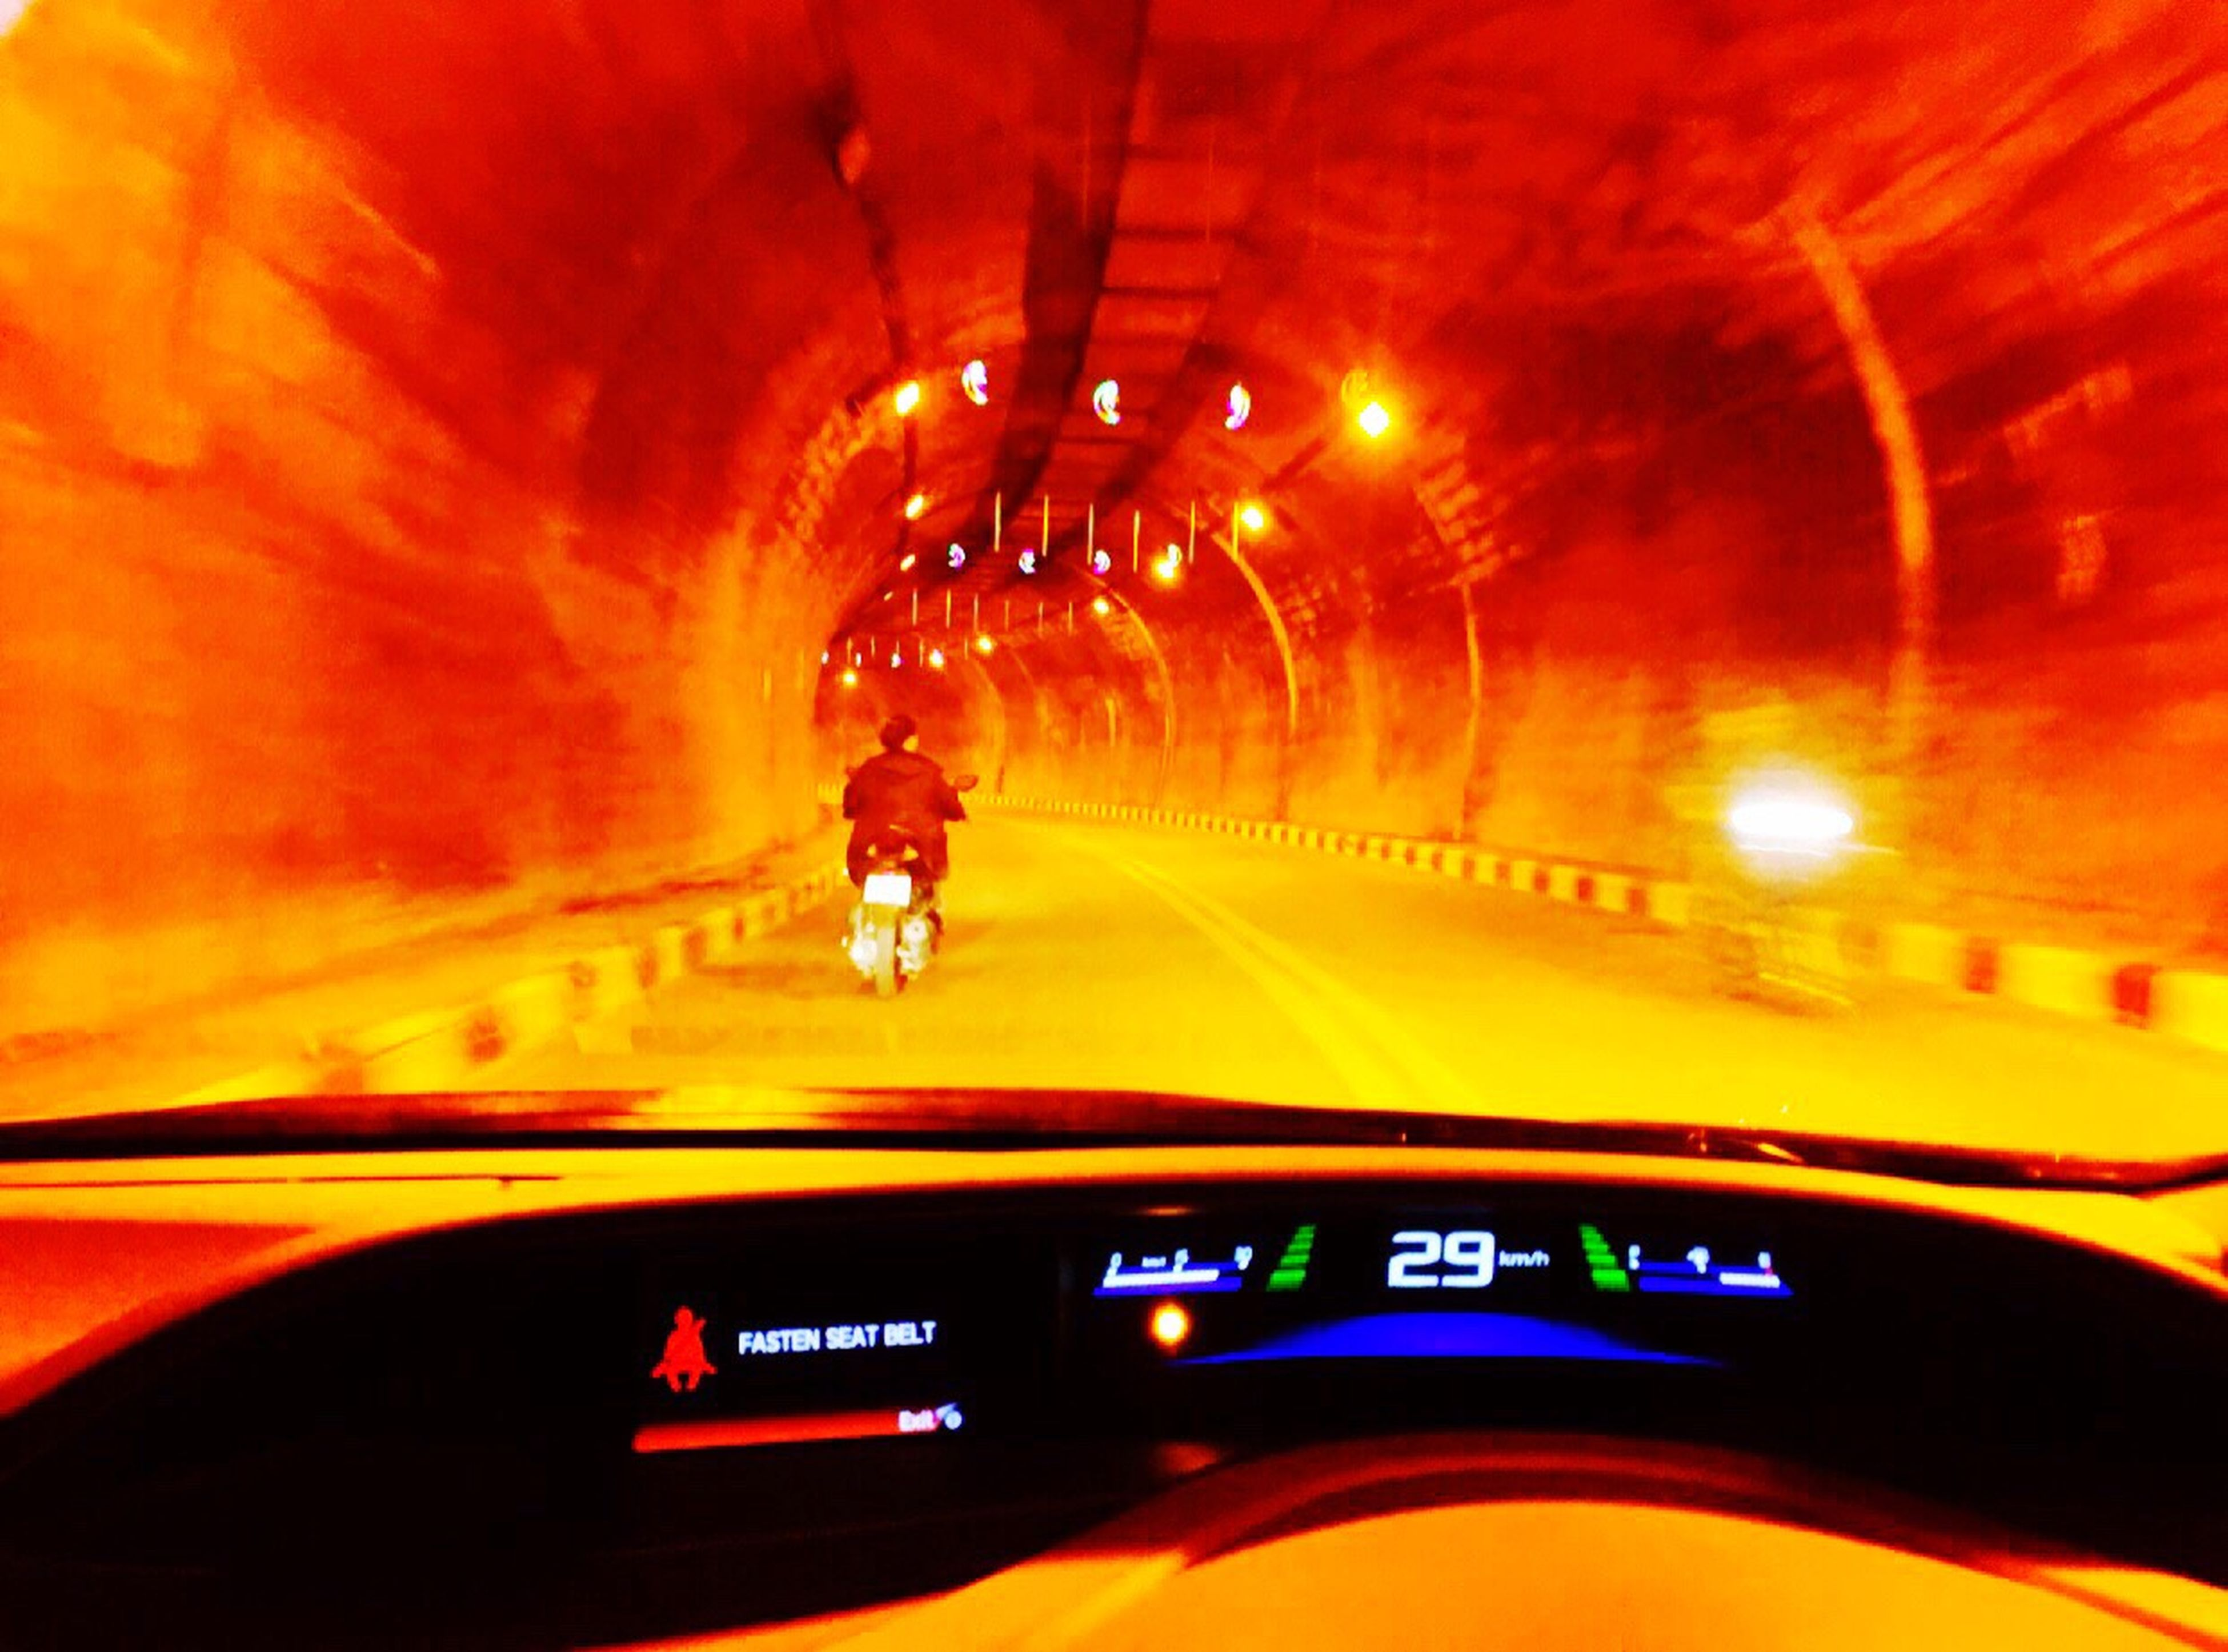 43 Golden Moments Betong Momgkllit Tunnel Tunnel Rocks Tunnel Of Light Tunnel View Taking Photos Through My Windshield Inside A Car Front View Famous Place Trip With Friends Vacation Betong Thailand We❤️thailand